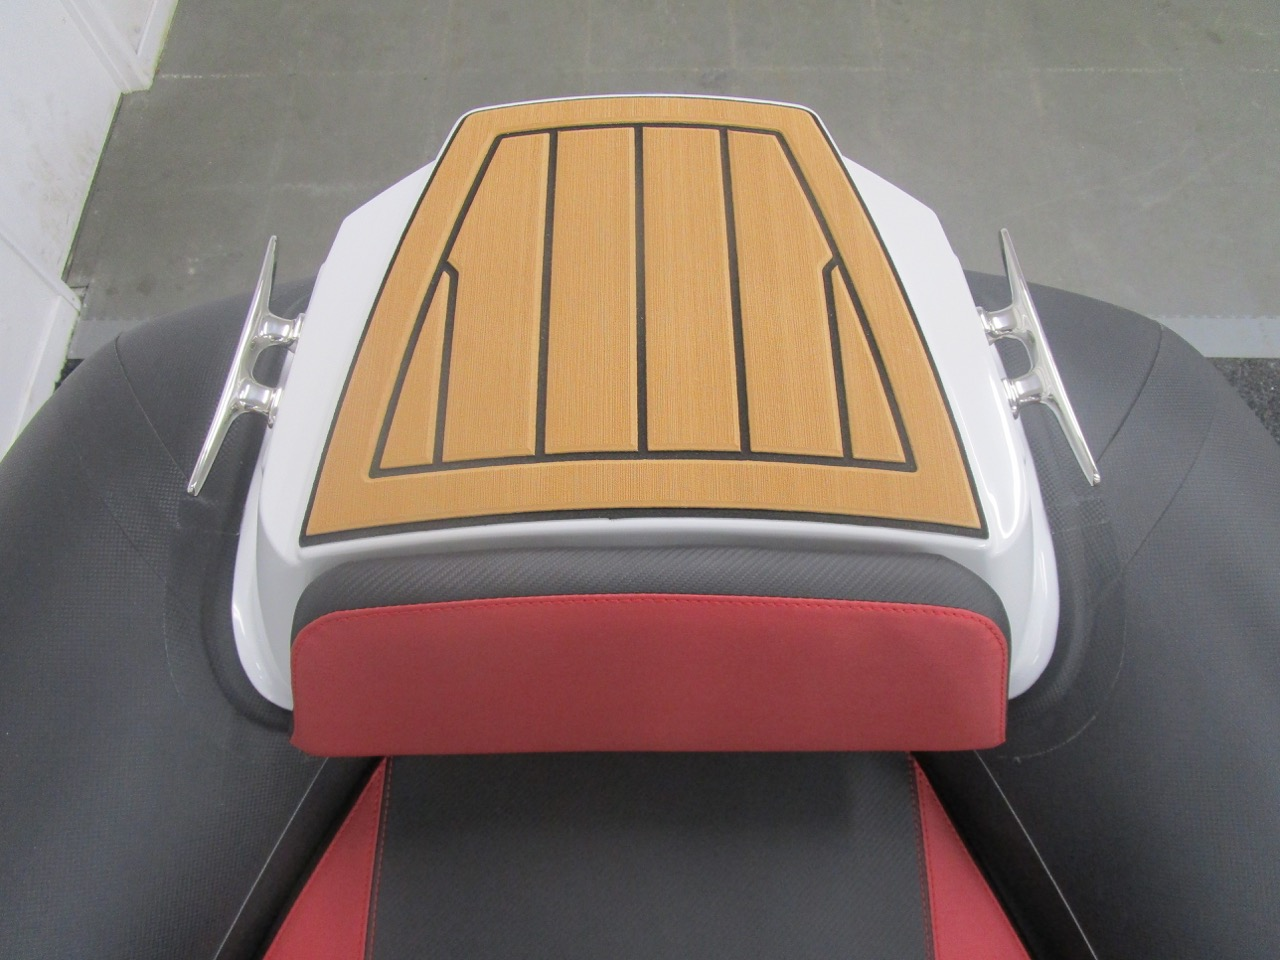 GRAND G750 RIB bow step and cleats